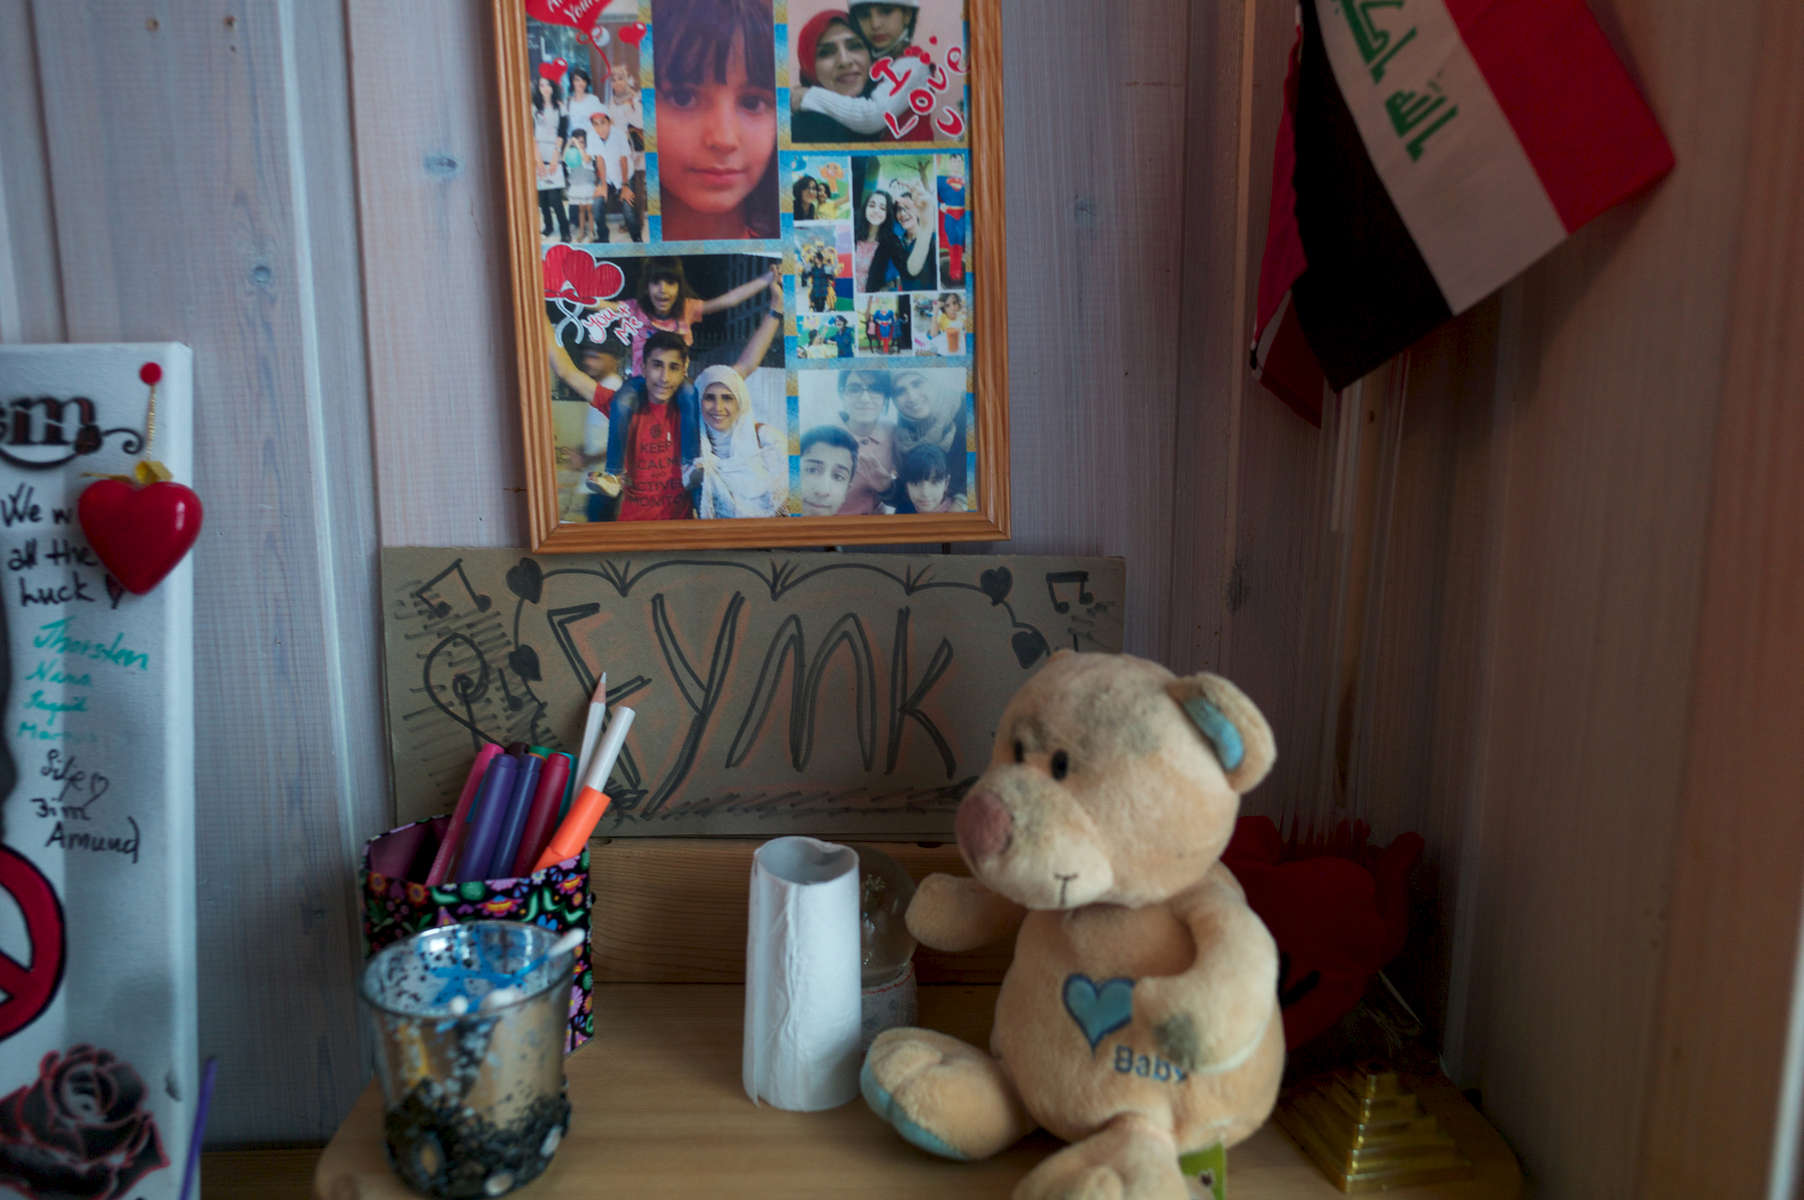 A wall and desk that has family photos and a handmade sign.